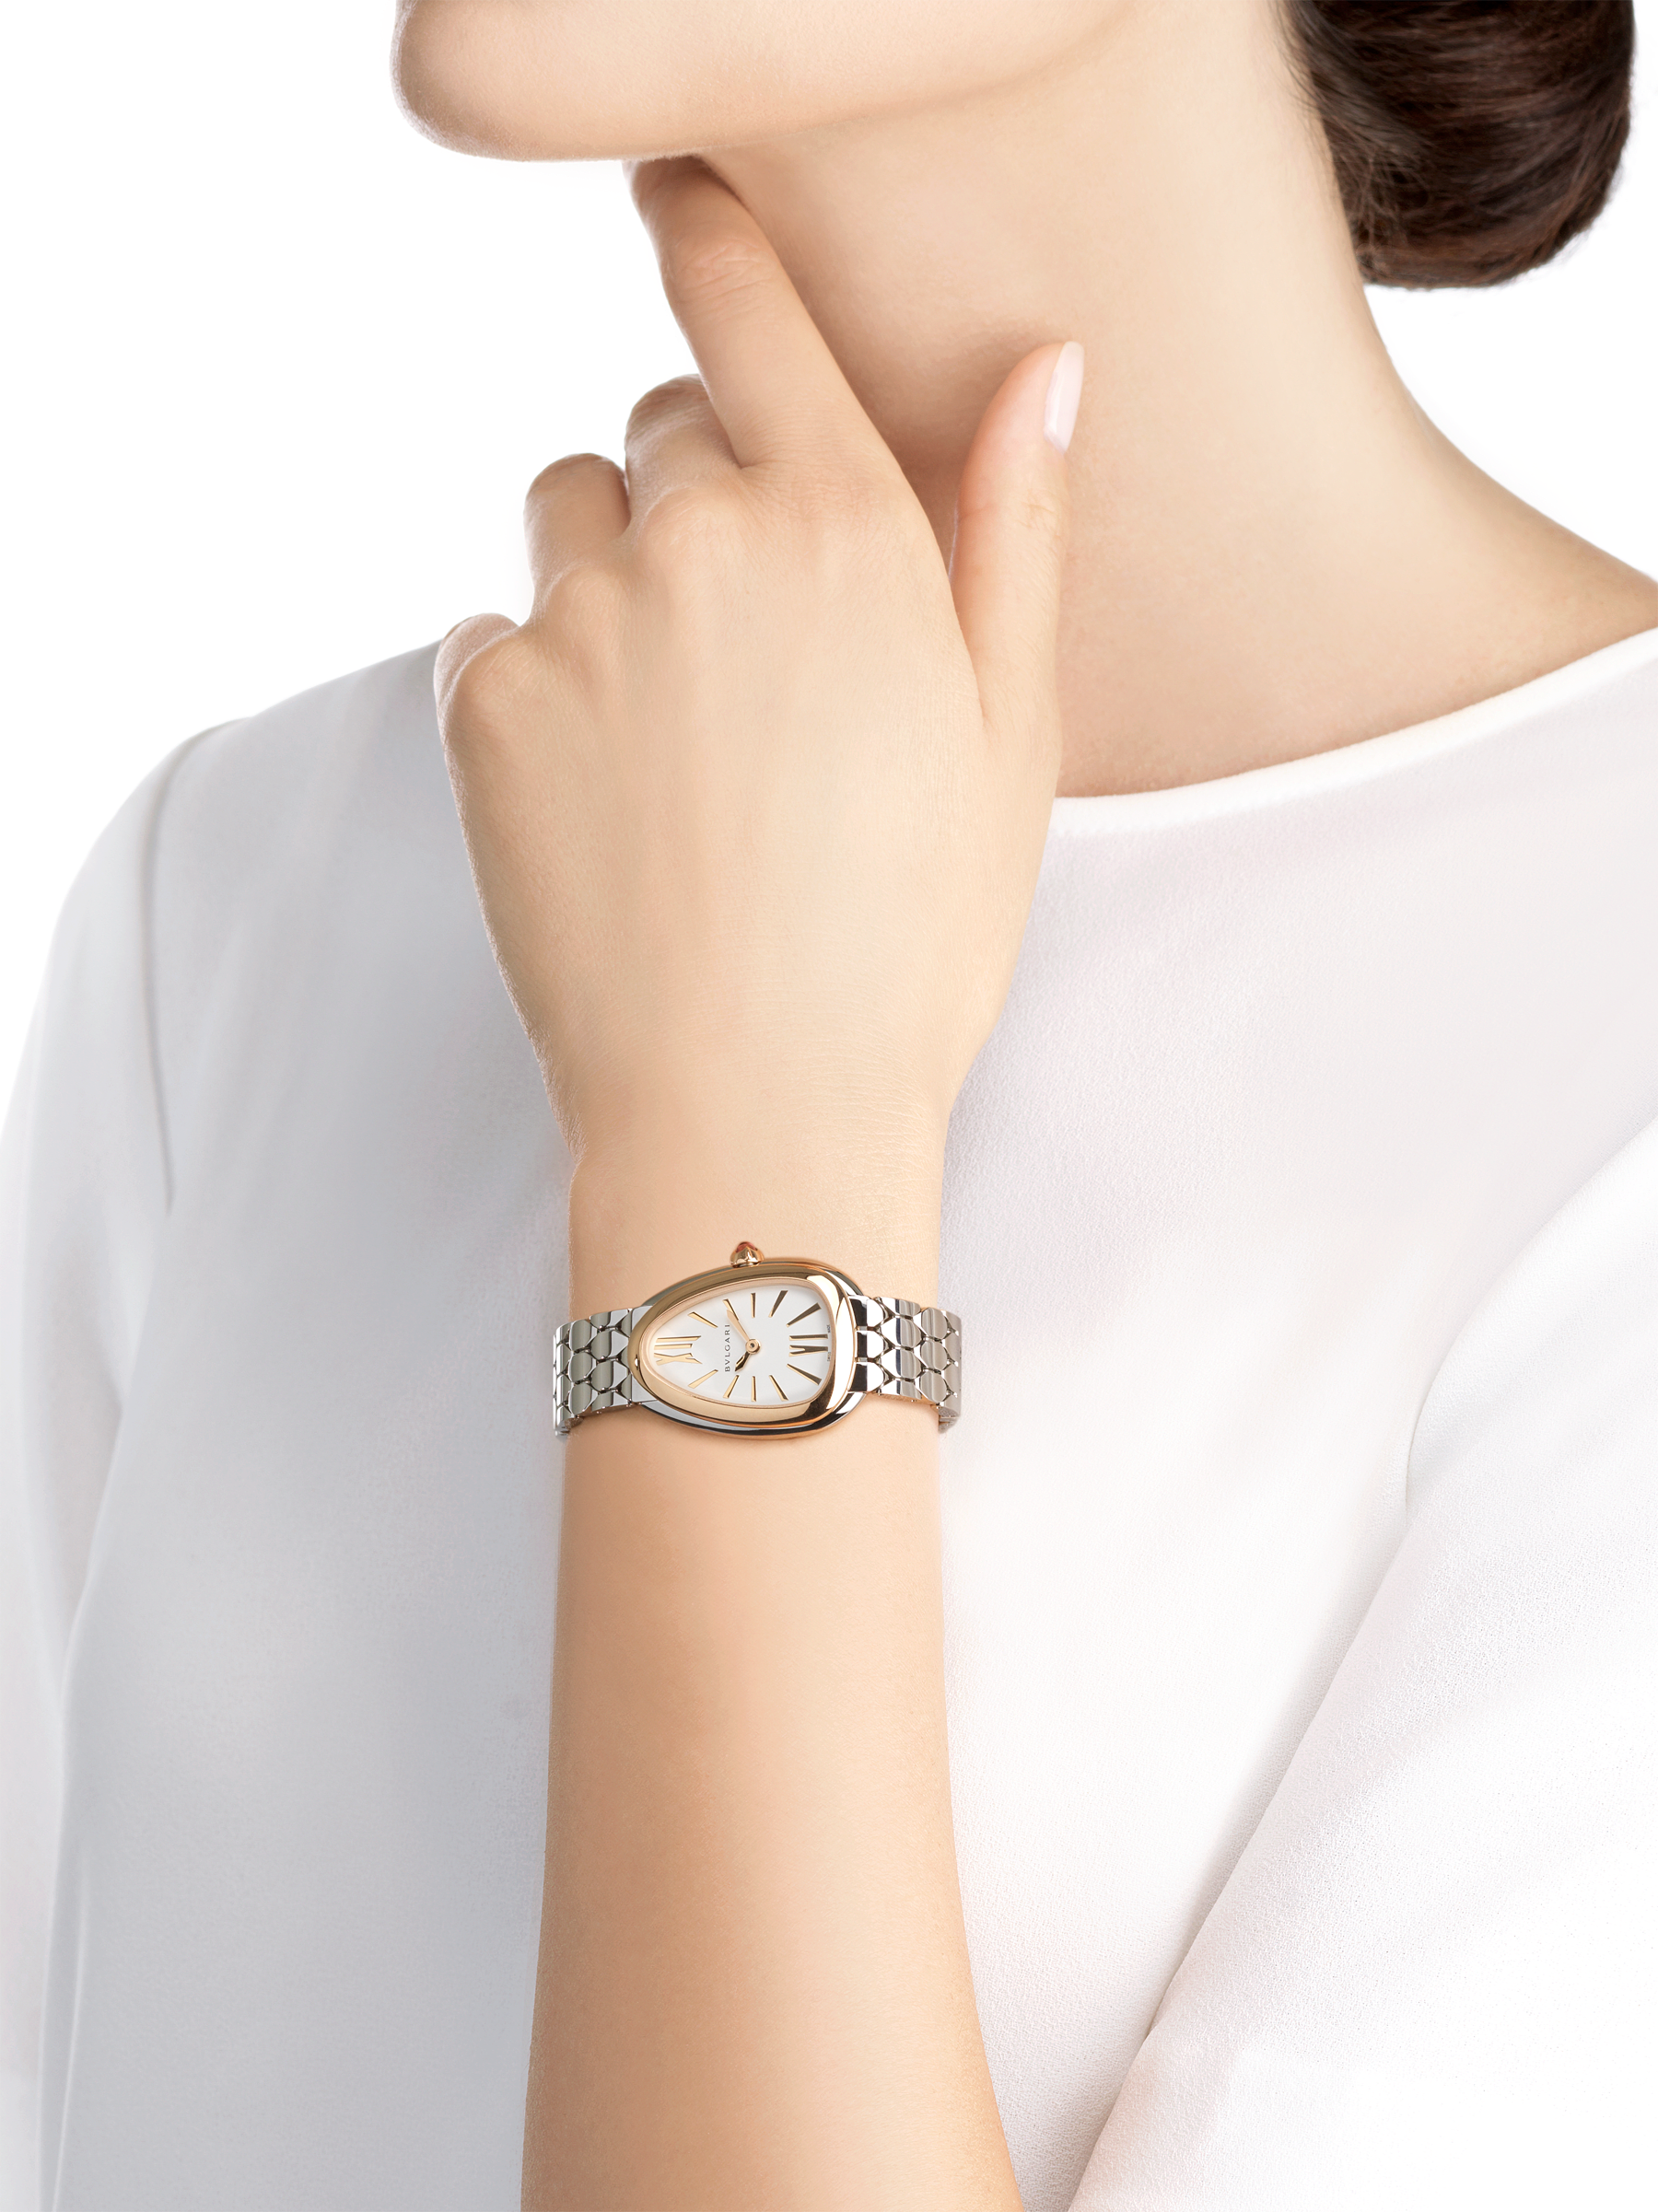 Serpenti Seduttori watch with stainless steel case, stainless steel bracelet, 18 kt rose gold bezel and a white silver opaline dial. 103144 image 4